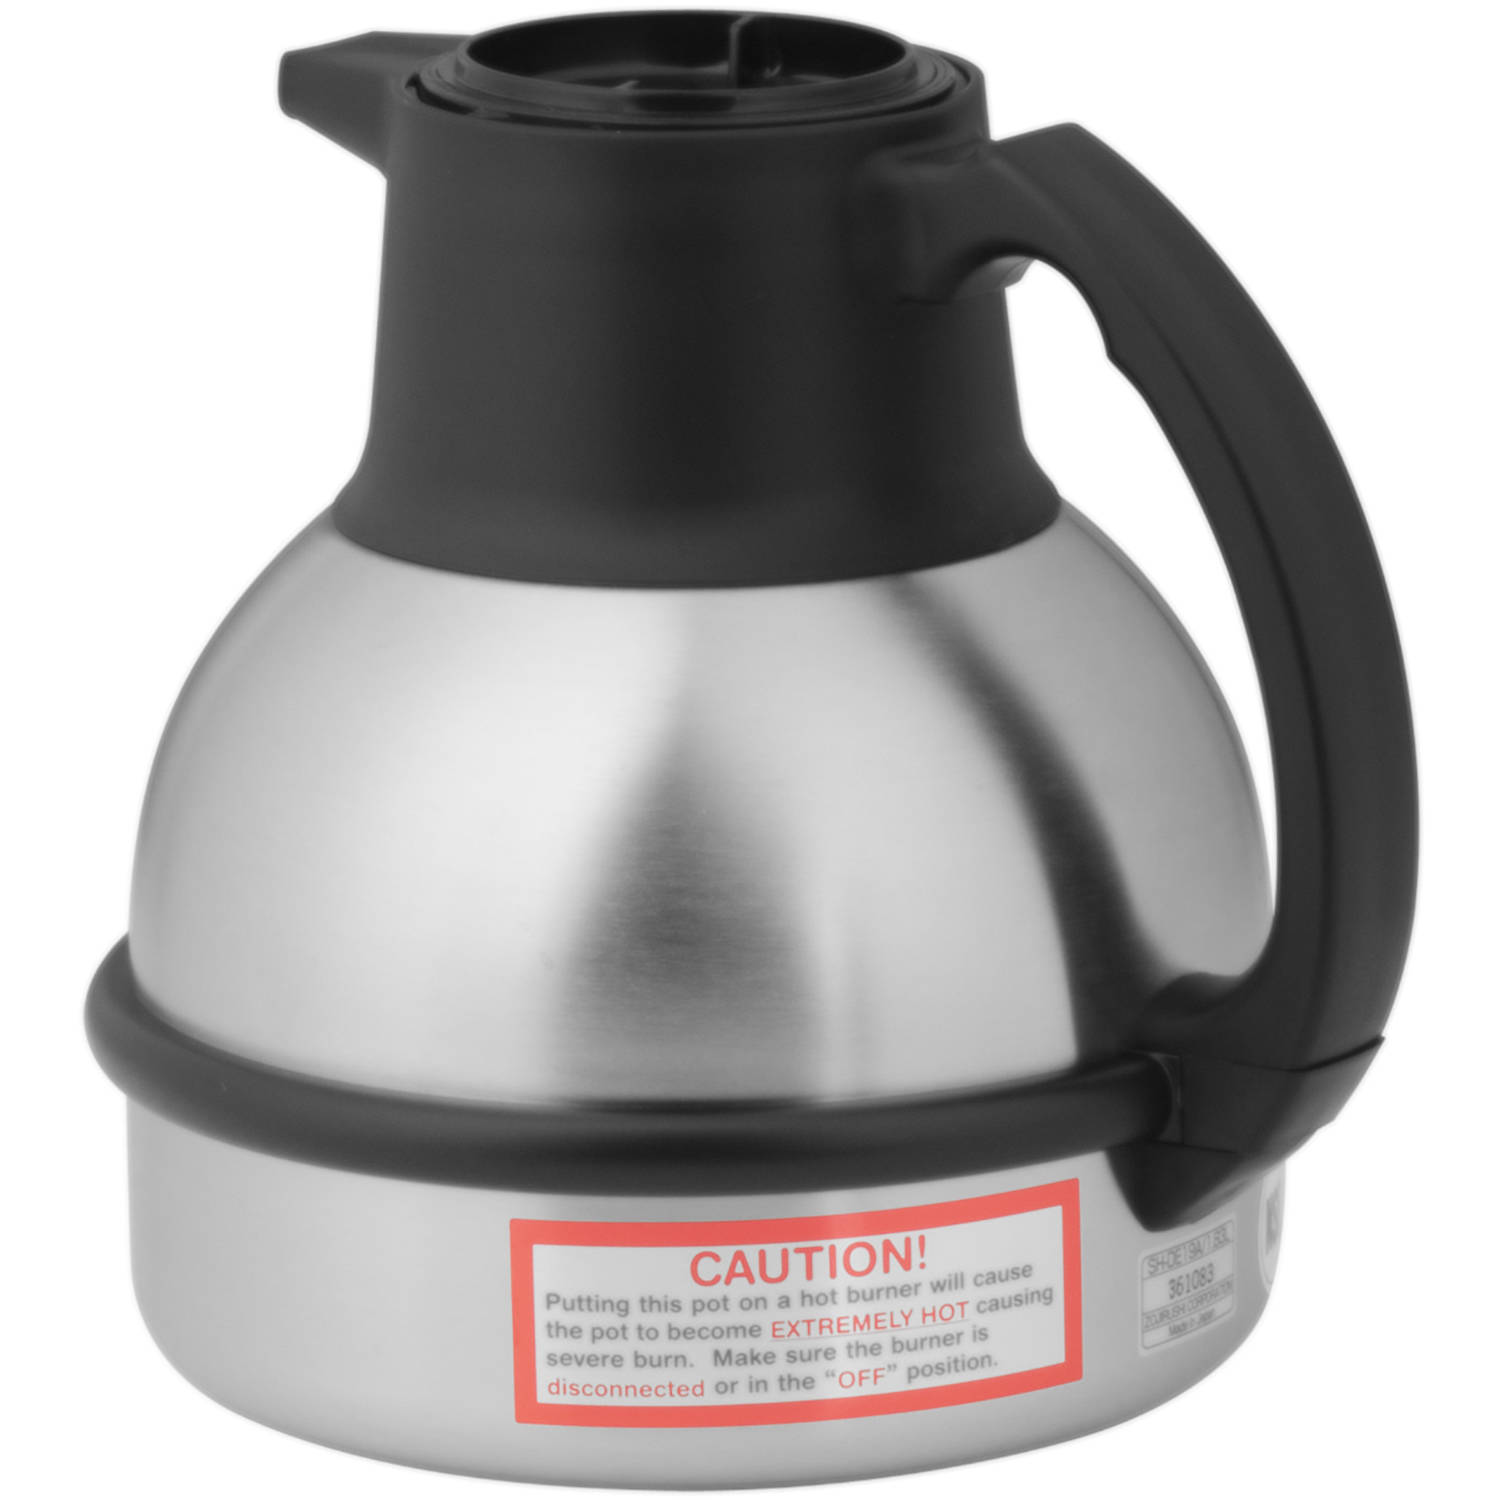 BUNN 1.9L (64 oz) Deluxe Thermal Carafe by Zojirushi, Black Handle